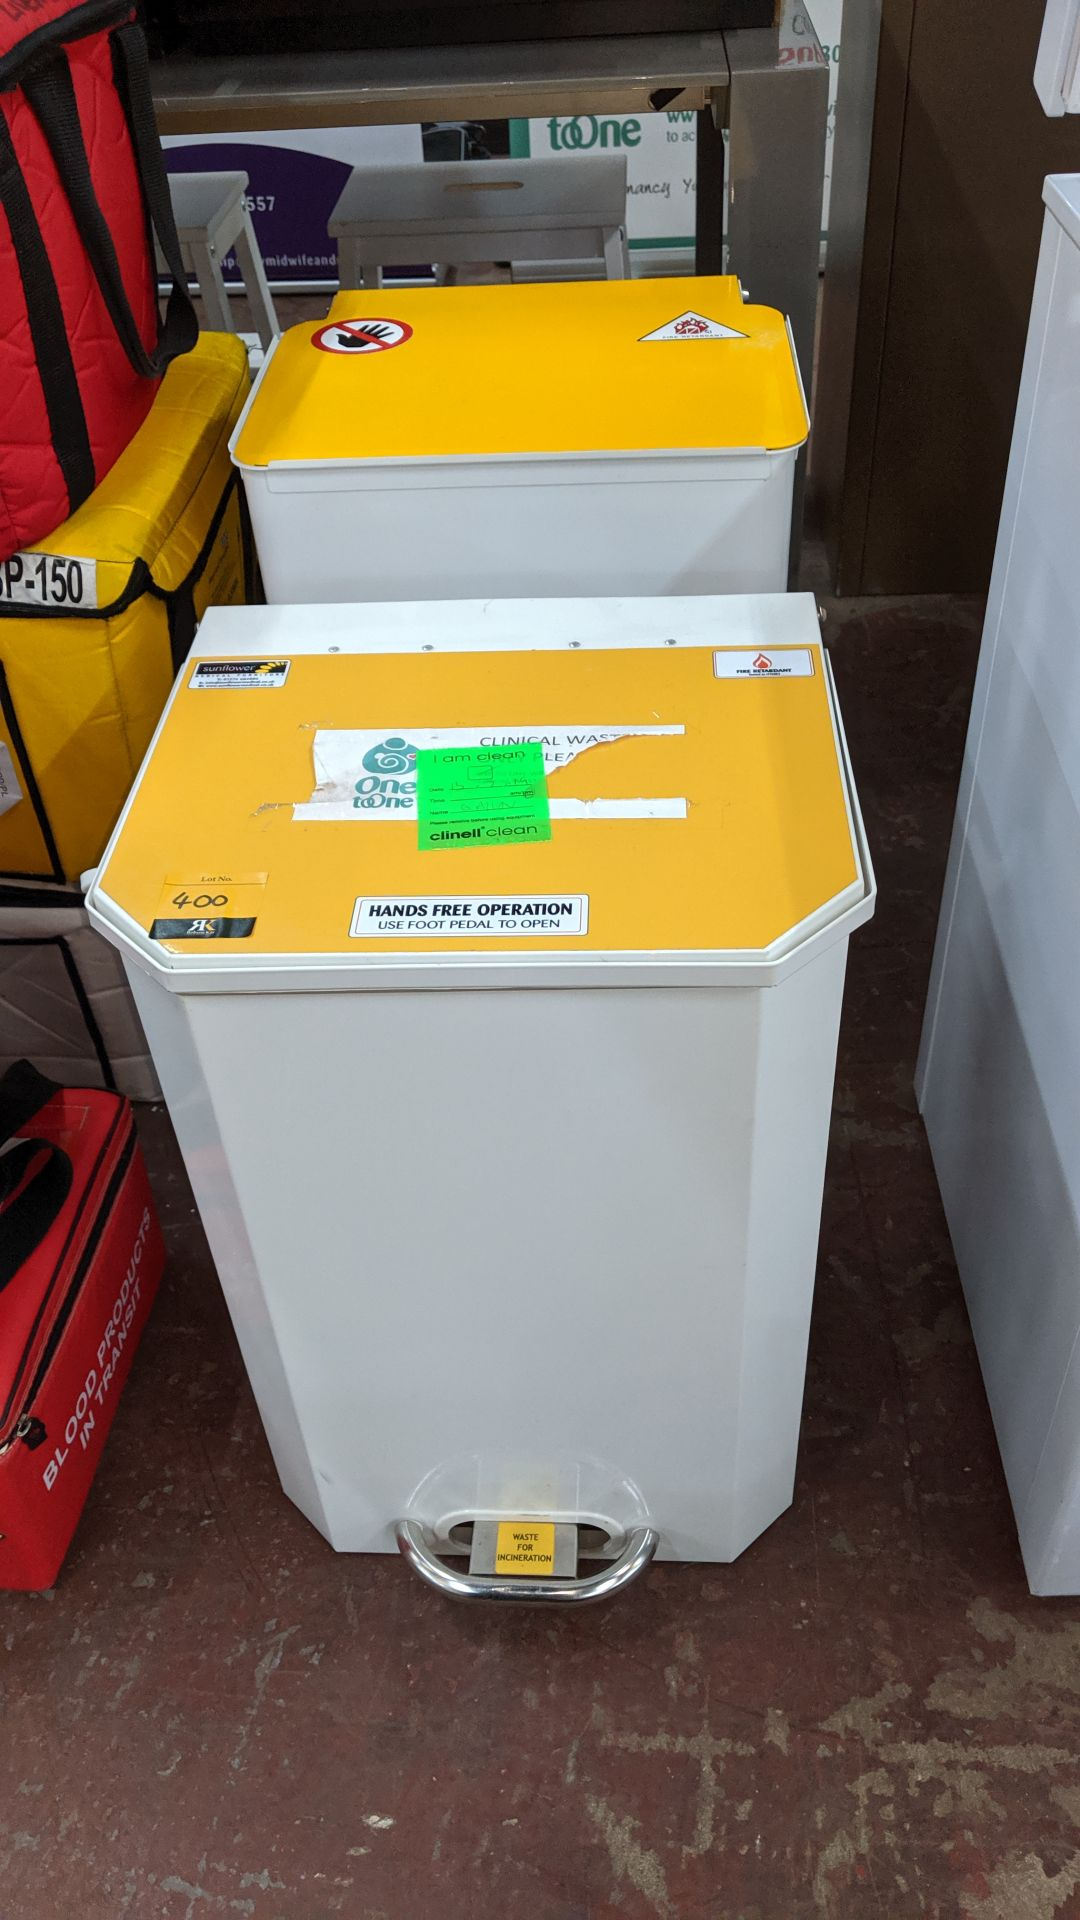 Lot 400 - 2 off metal pedal bins. This is one of a large number of lots used/owned by One To One (North